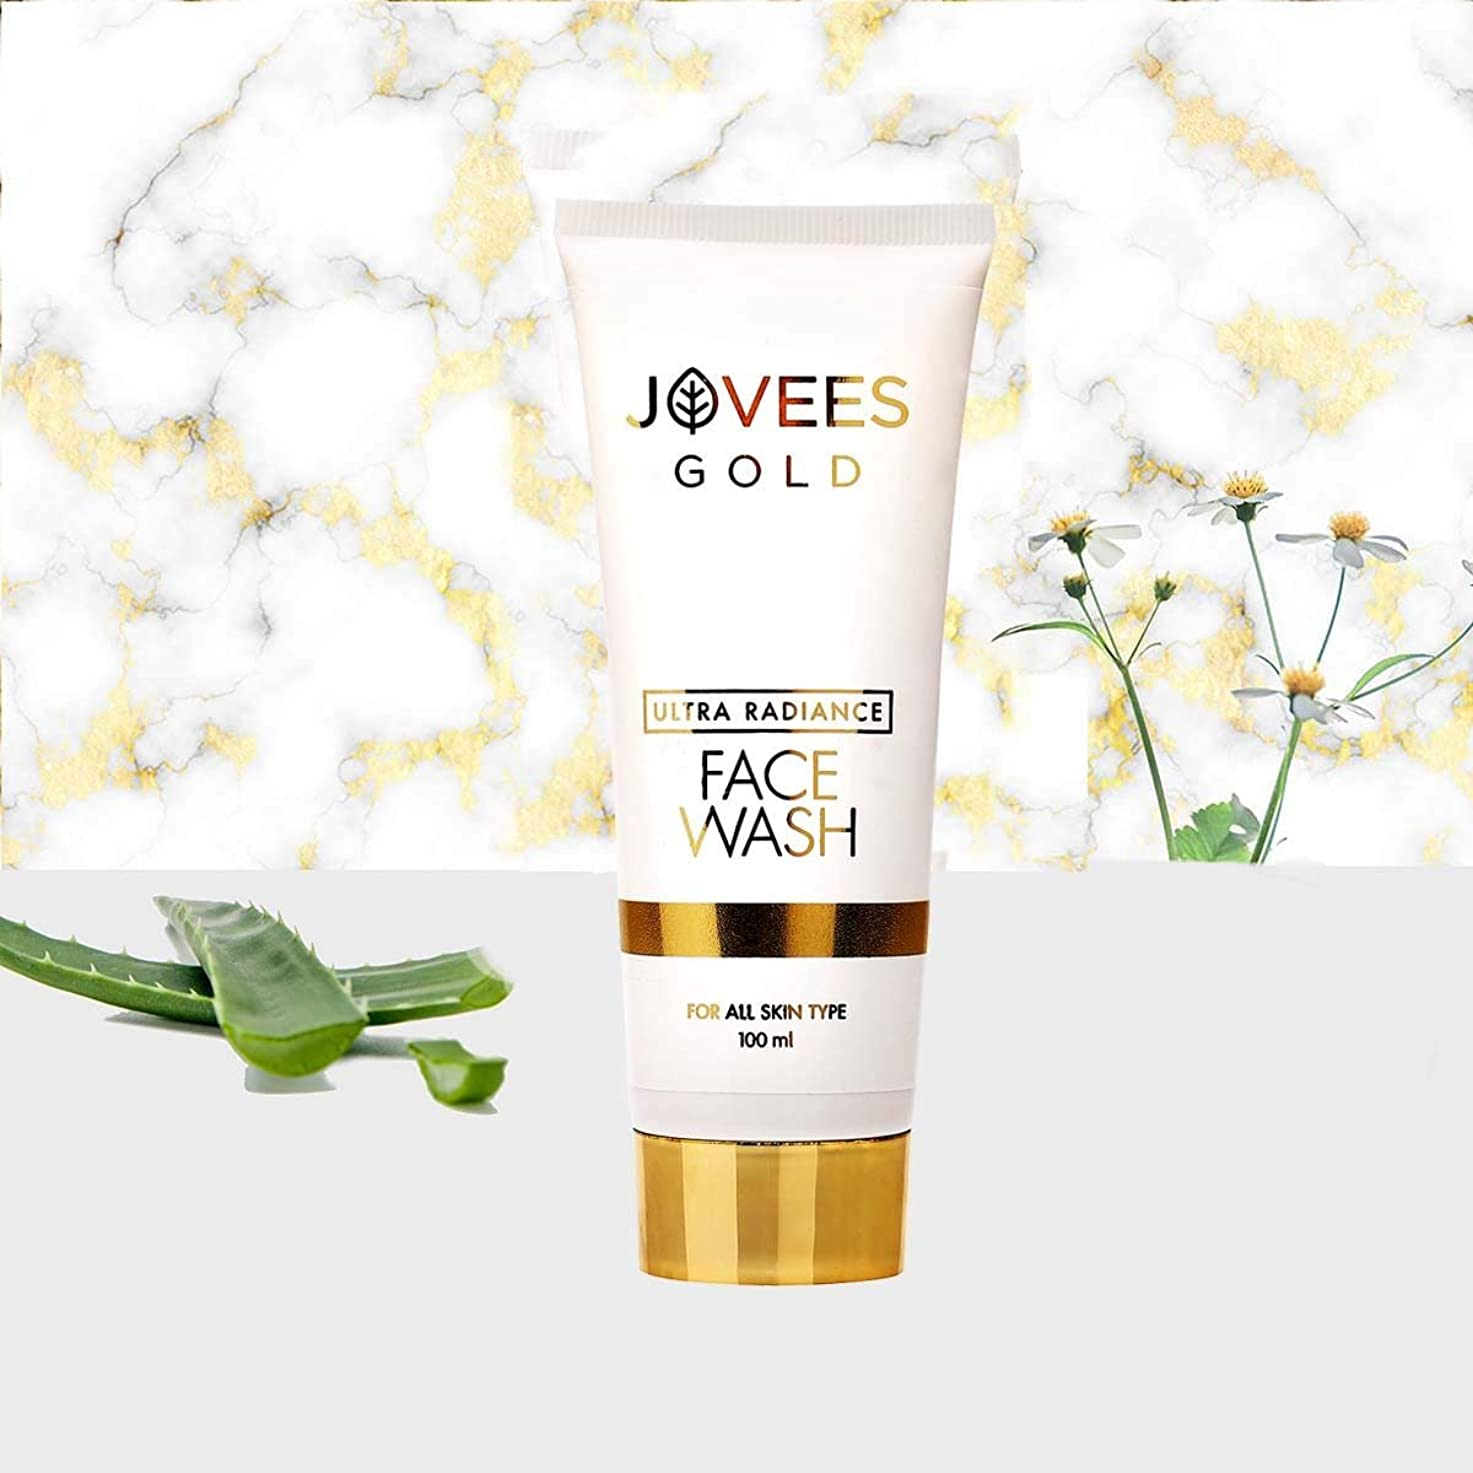 Jovees Ultra Radiance 24K Gold Face Wash 100ml to help bring glow and radiance 輝きと輝きをもたらすのを助けるためにJovees Ultra Radiance 24Kゴールドフェイスウォッシュ